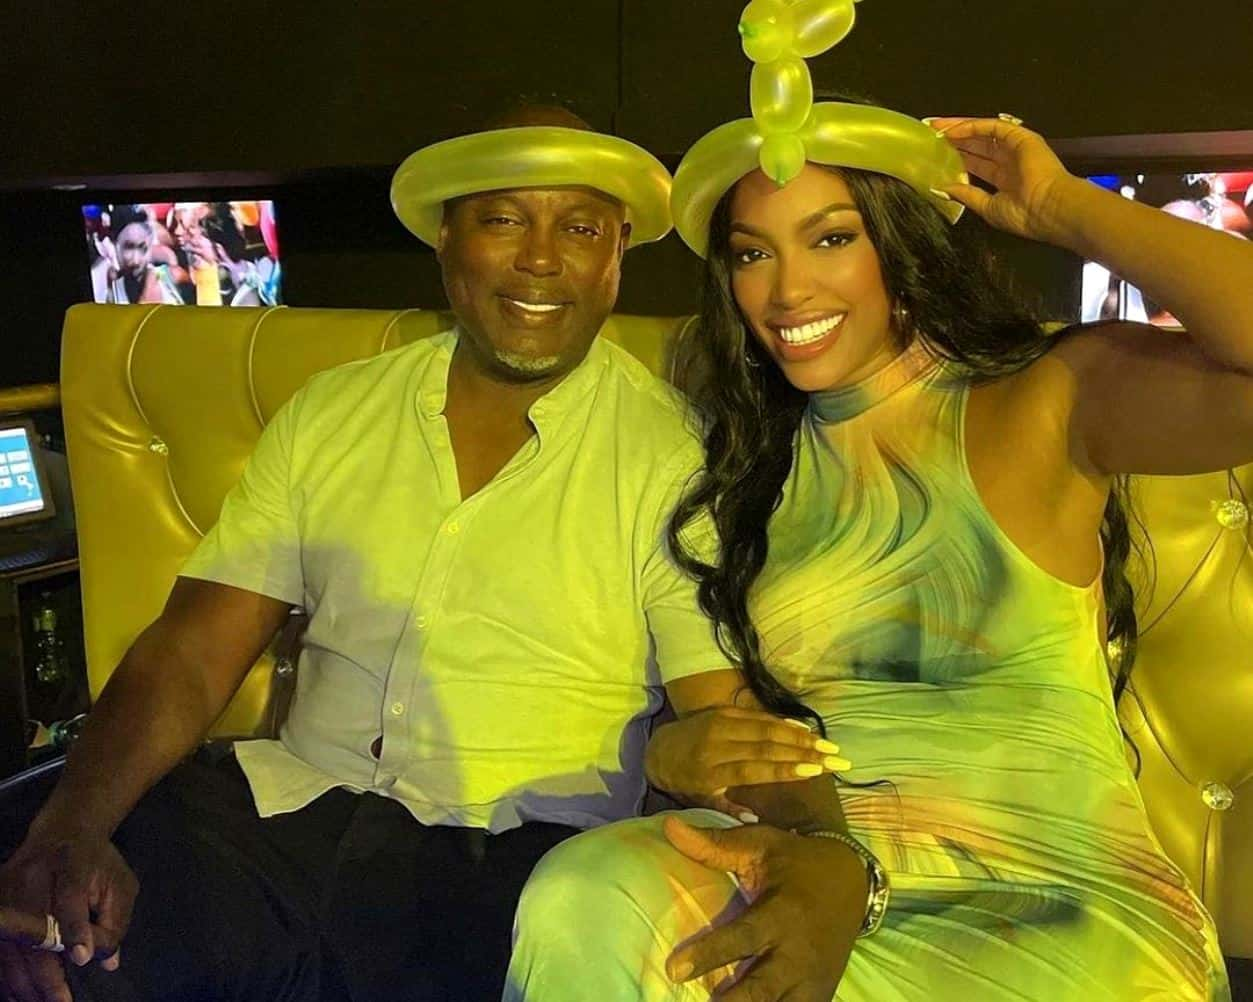 PHOTOS: RHOA's Porsha Williams Gets 2 Cakes For Fiancé Simon Guobadia's 57th Birthday, See Pictures of the Pricey Gift She Also Gave Him